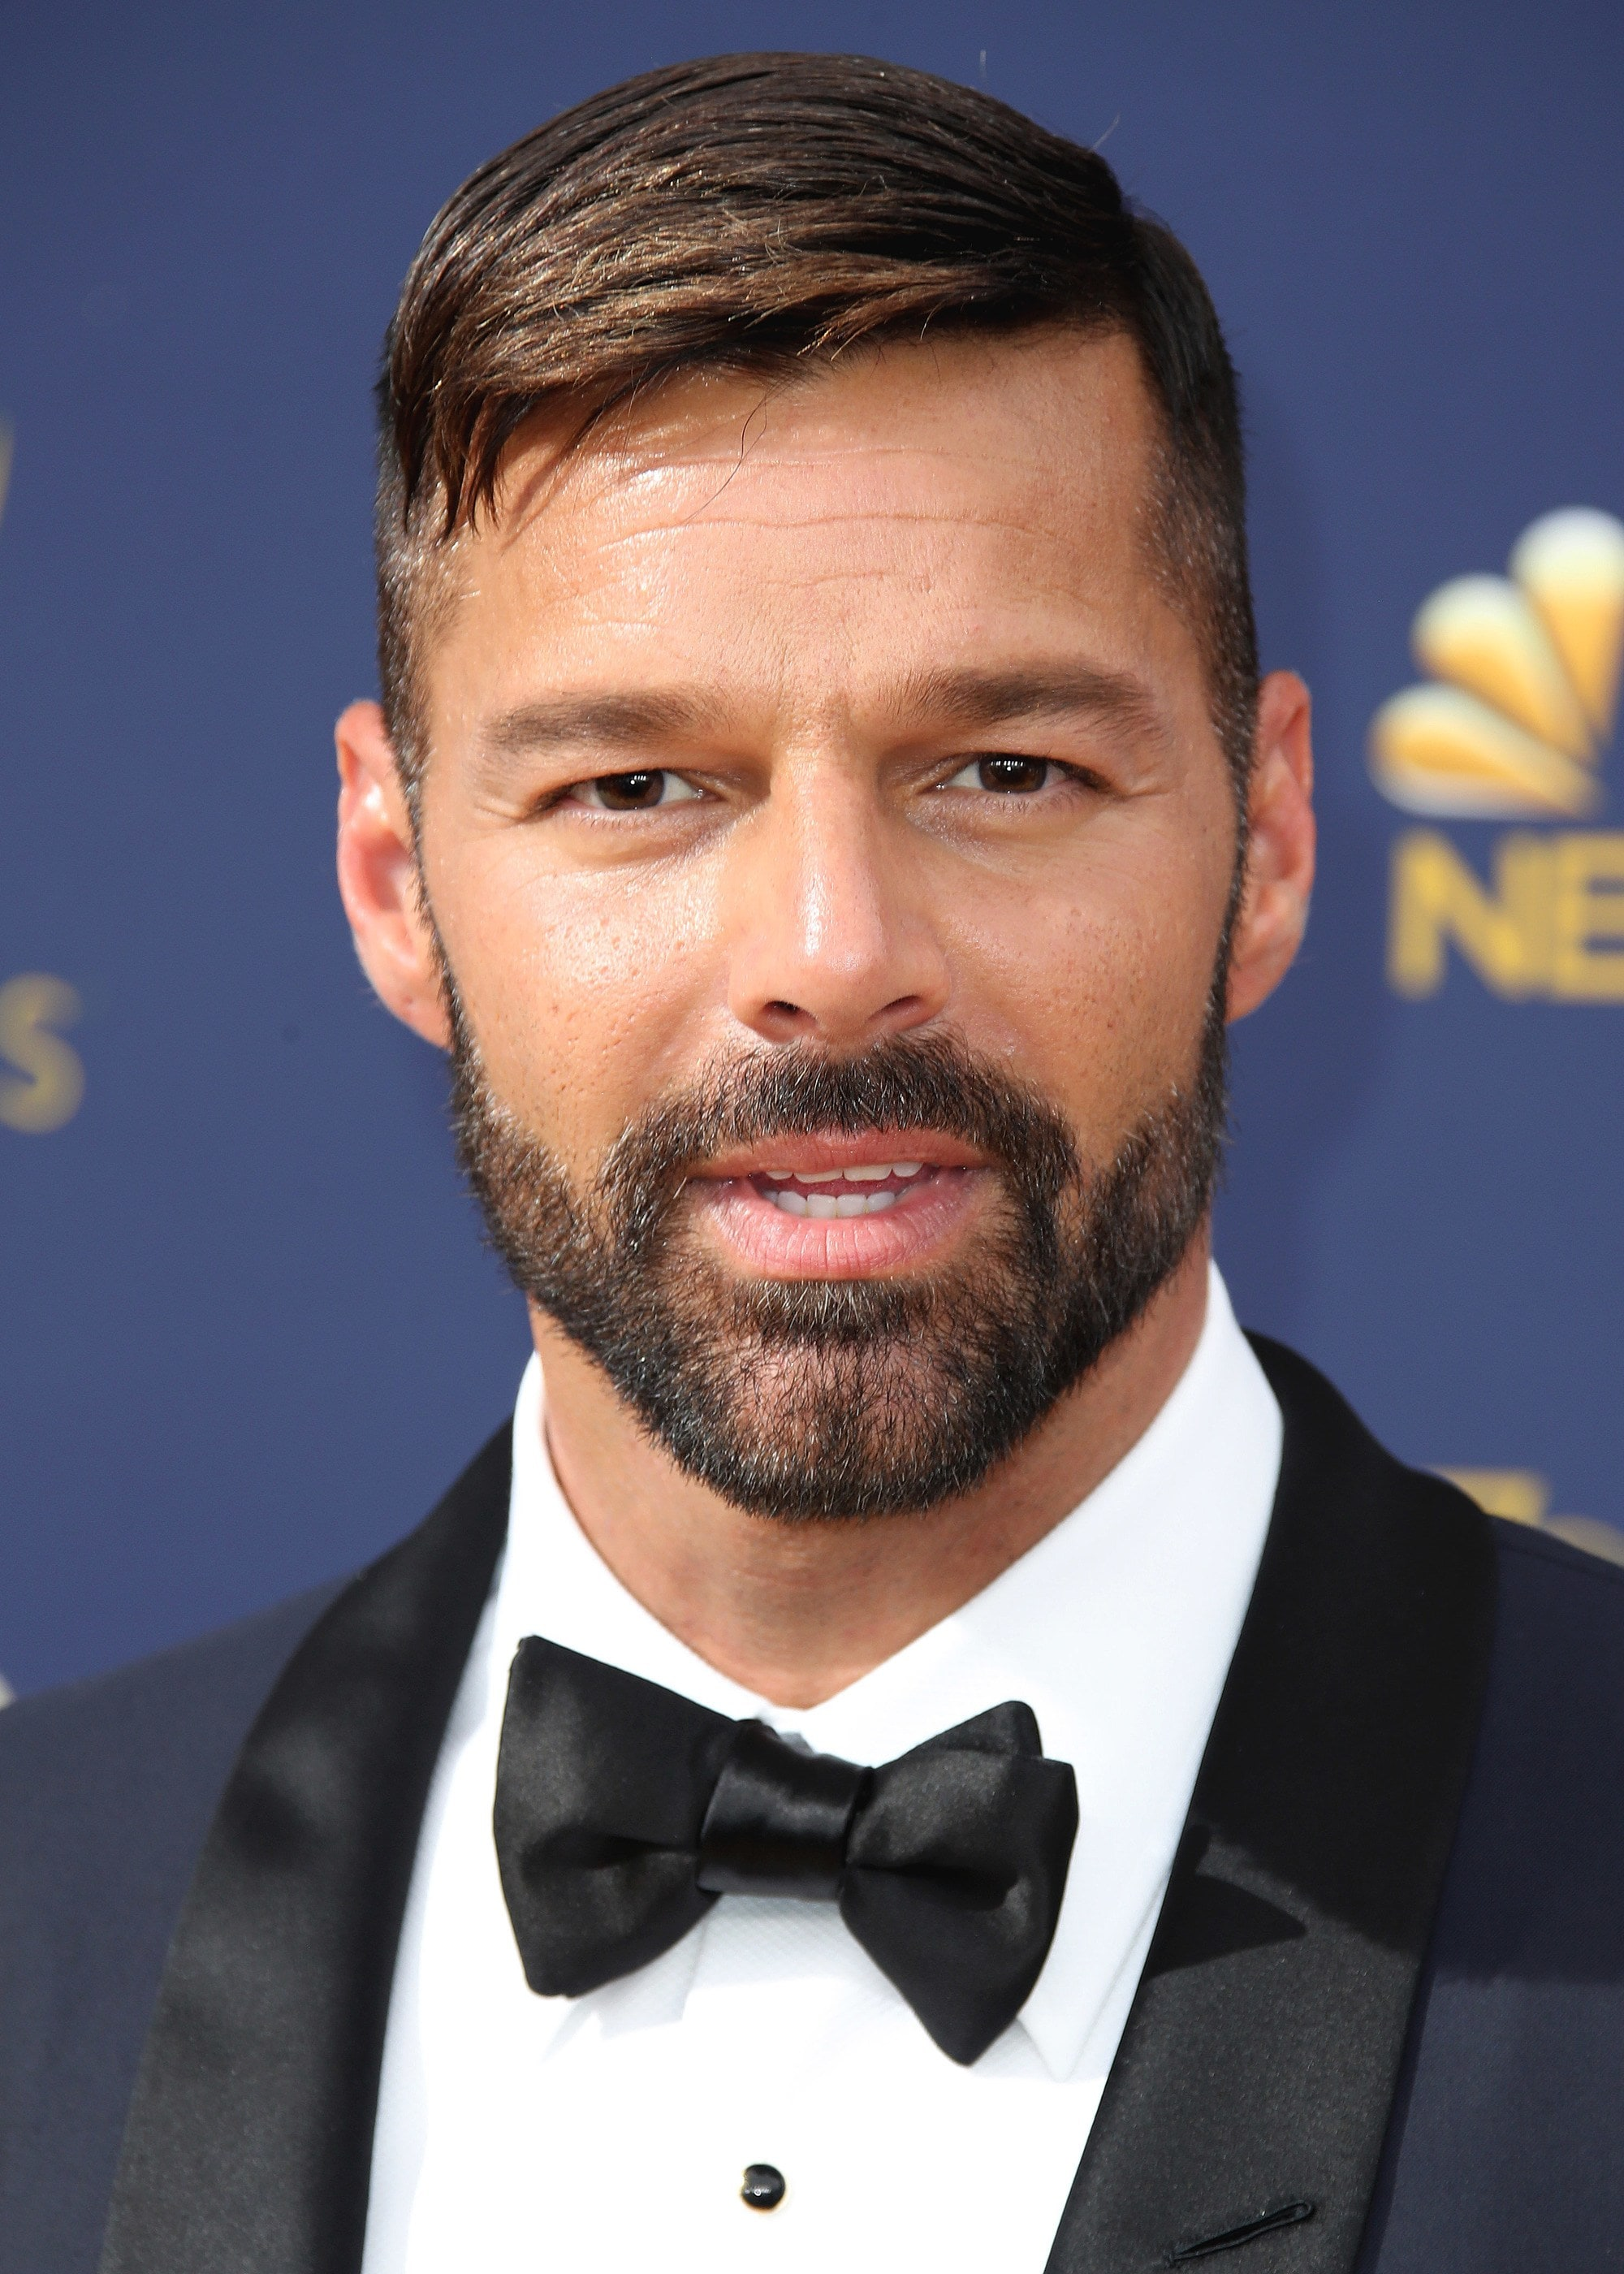 Hairstyles for receding hairline: Close-up headshot of Ricky Martin with a short combover with shorter sides and facial hair